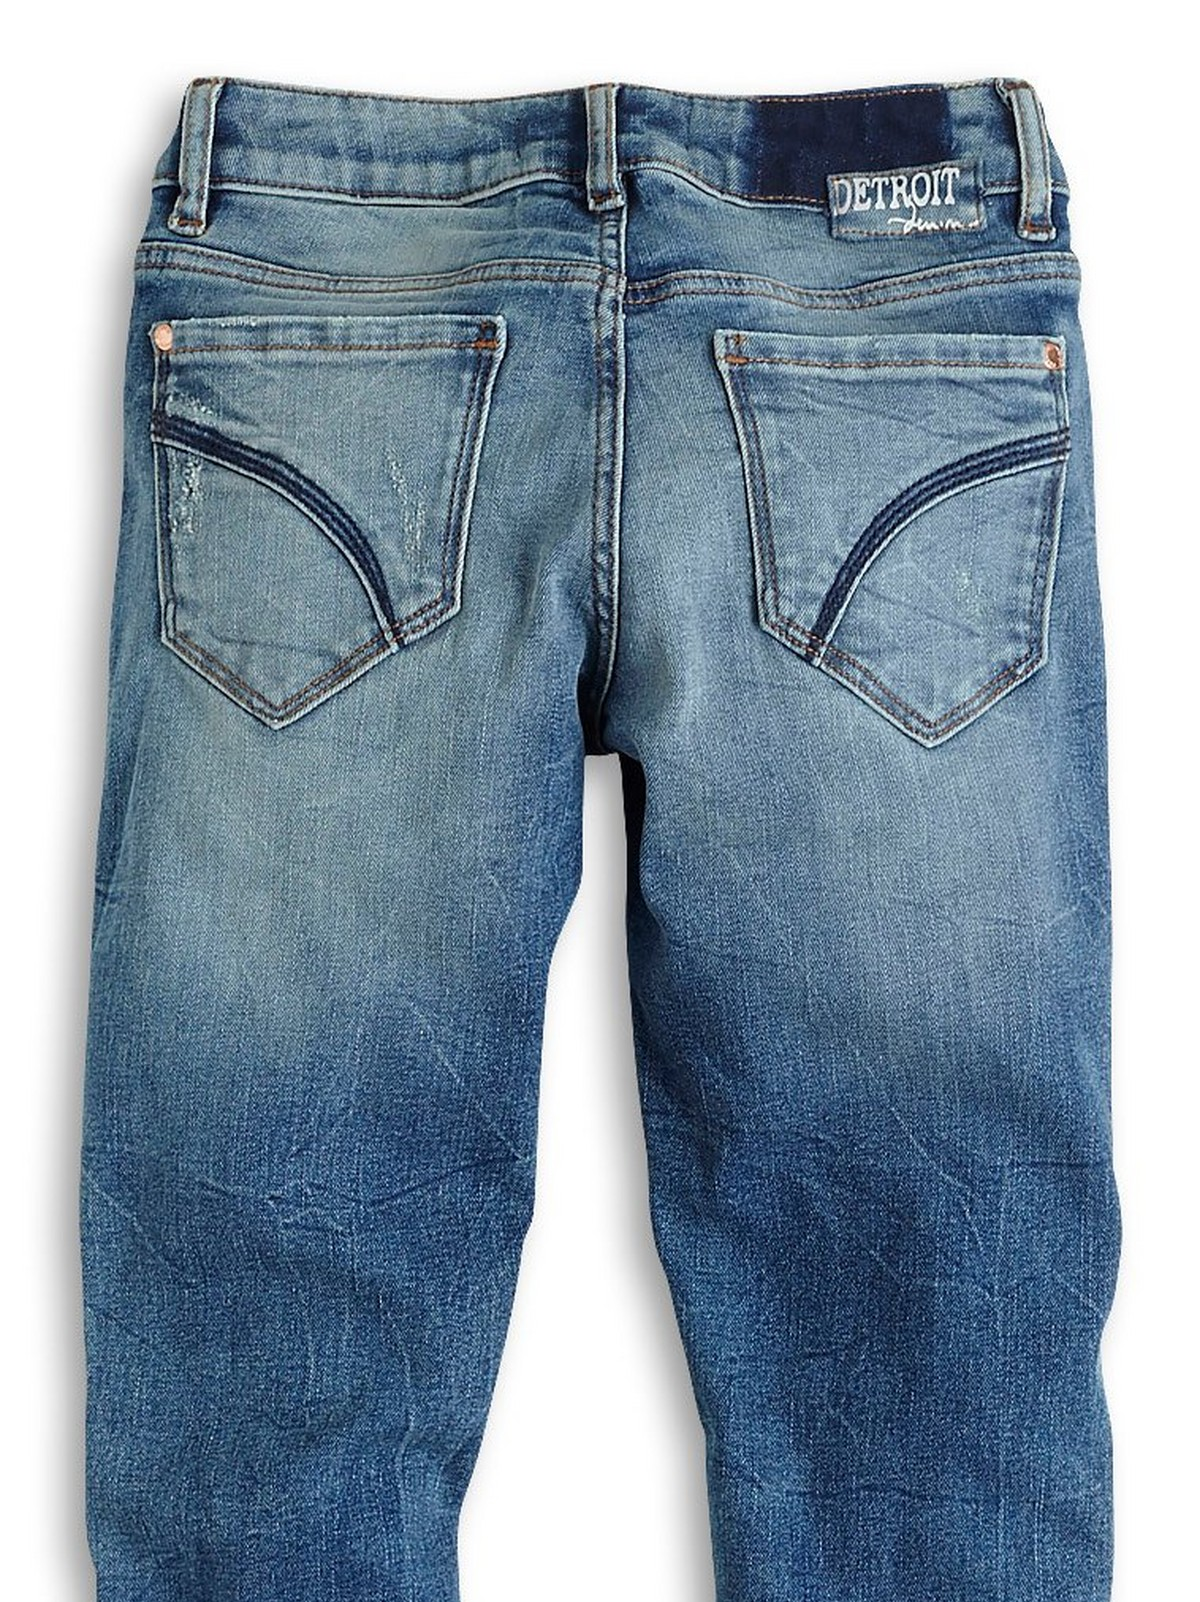 Girls/' Slim Fit Jeans Blue Light Washed Ripped Denim Pants Trousers 7-14 Years